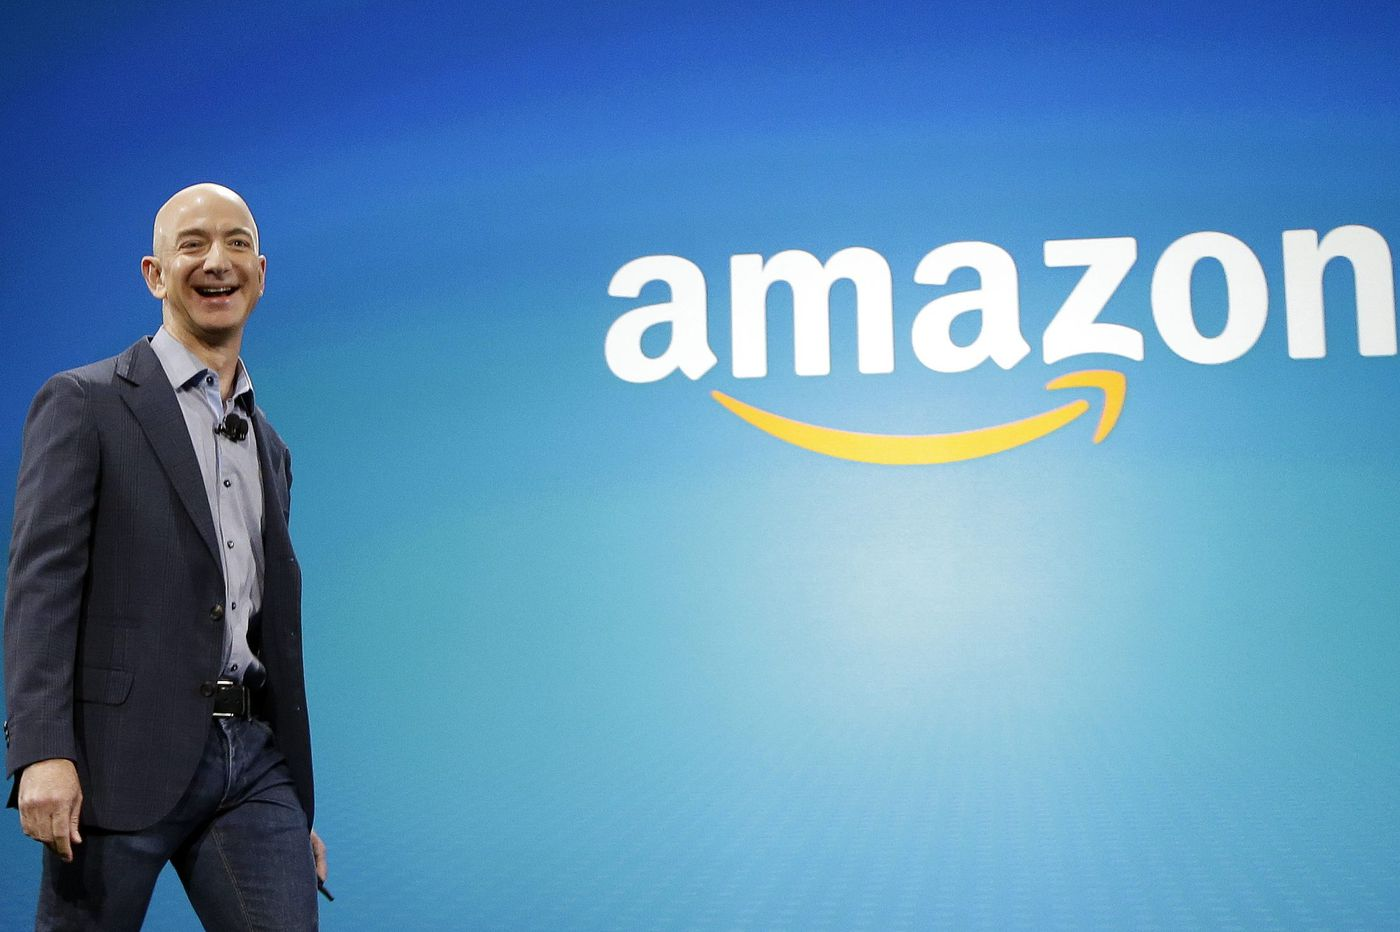 Jeff Bezos is what democracy needs right now | Opinion